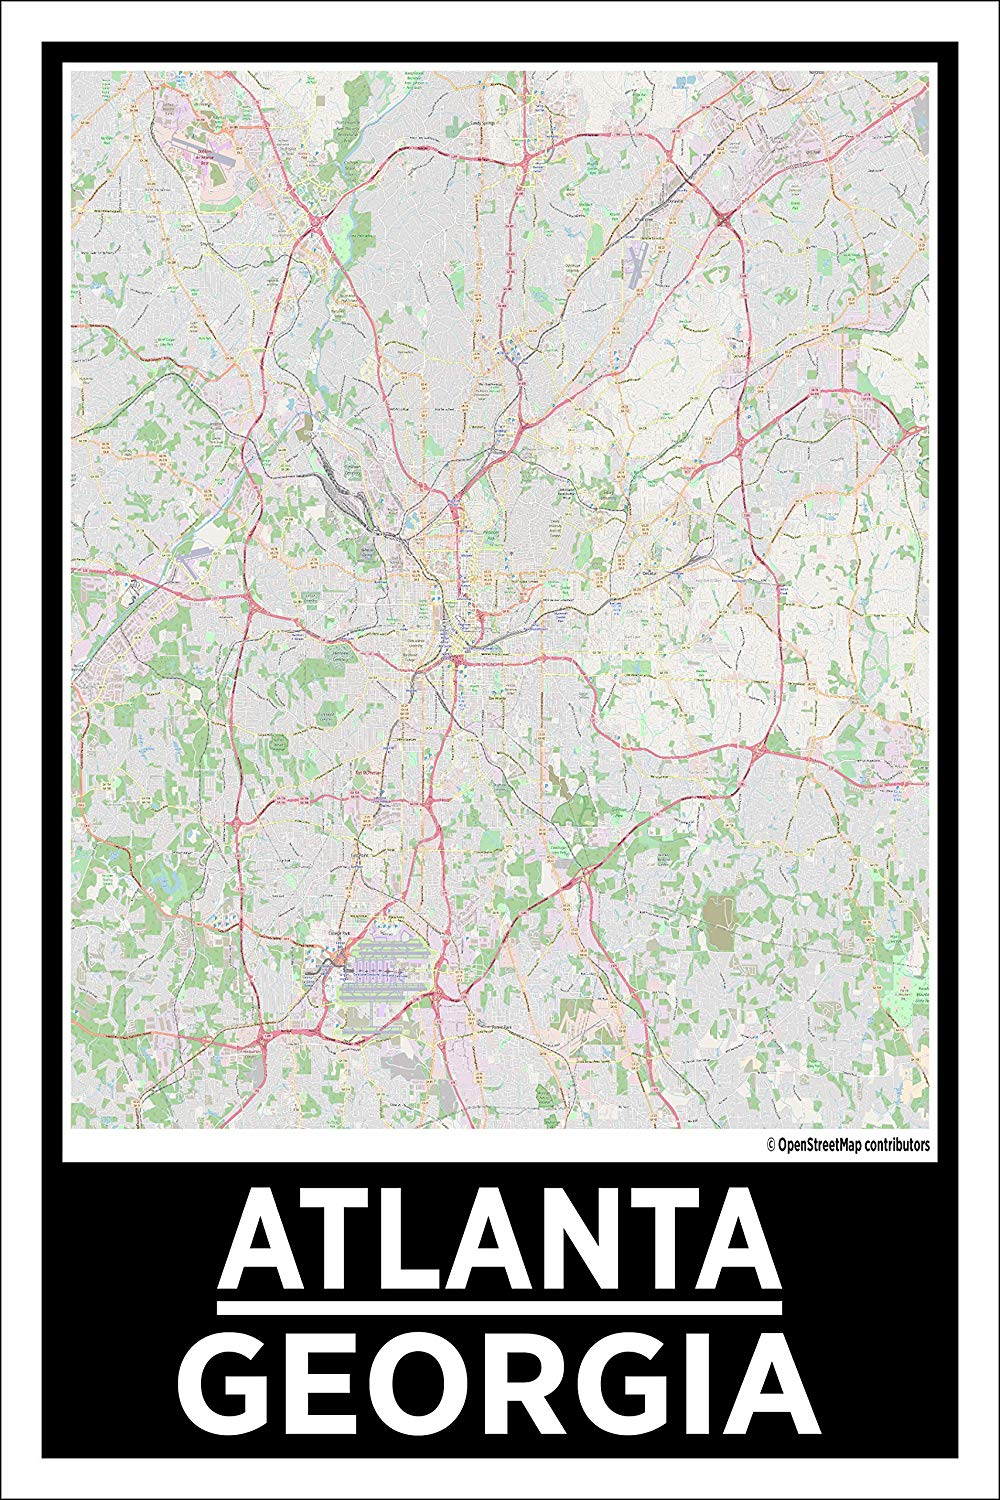 "Spitzy's Atlanta Georgia Map Poster - Home Wall Art for Your Bedroom or Home Office - Map of Atlanta, City Map Poster (12"" x 18"" Dimensions Include a White .5"" Border)"